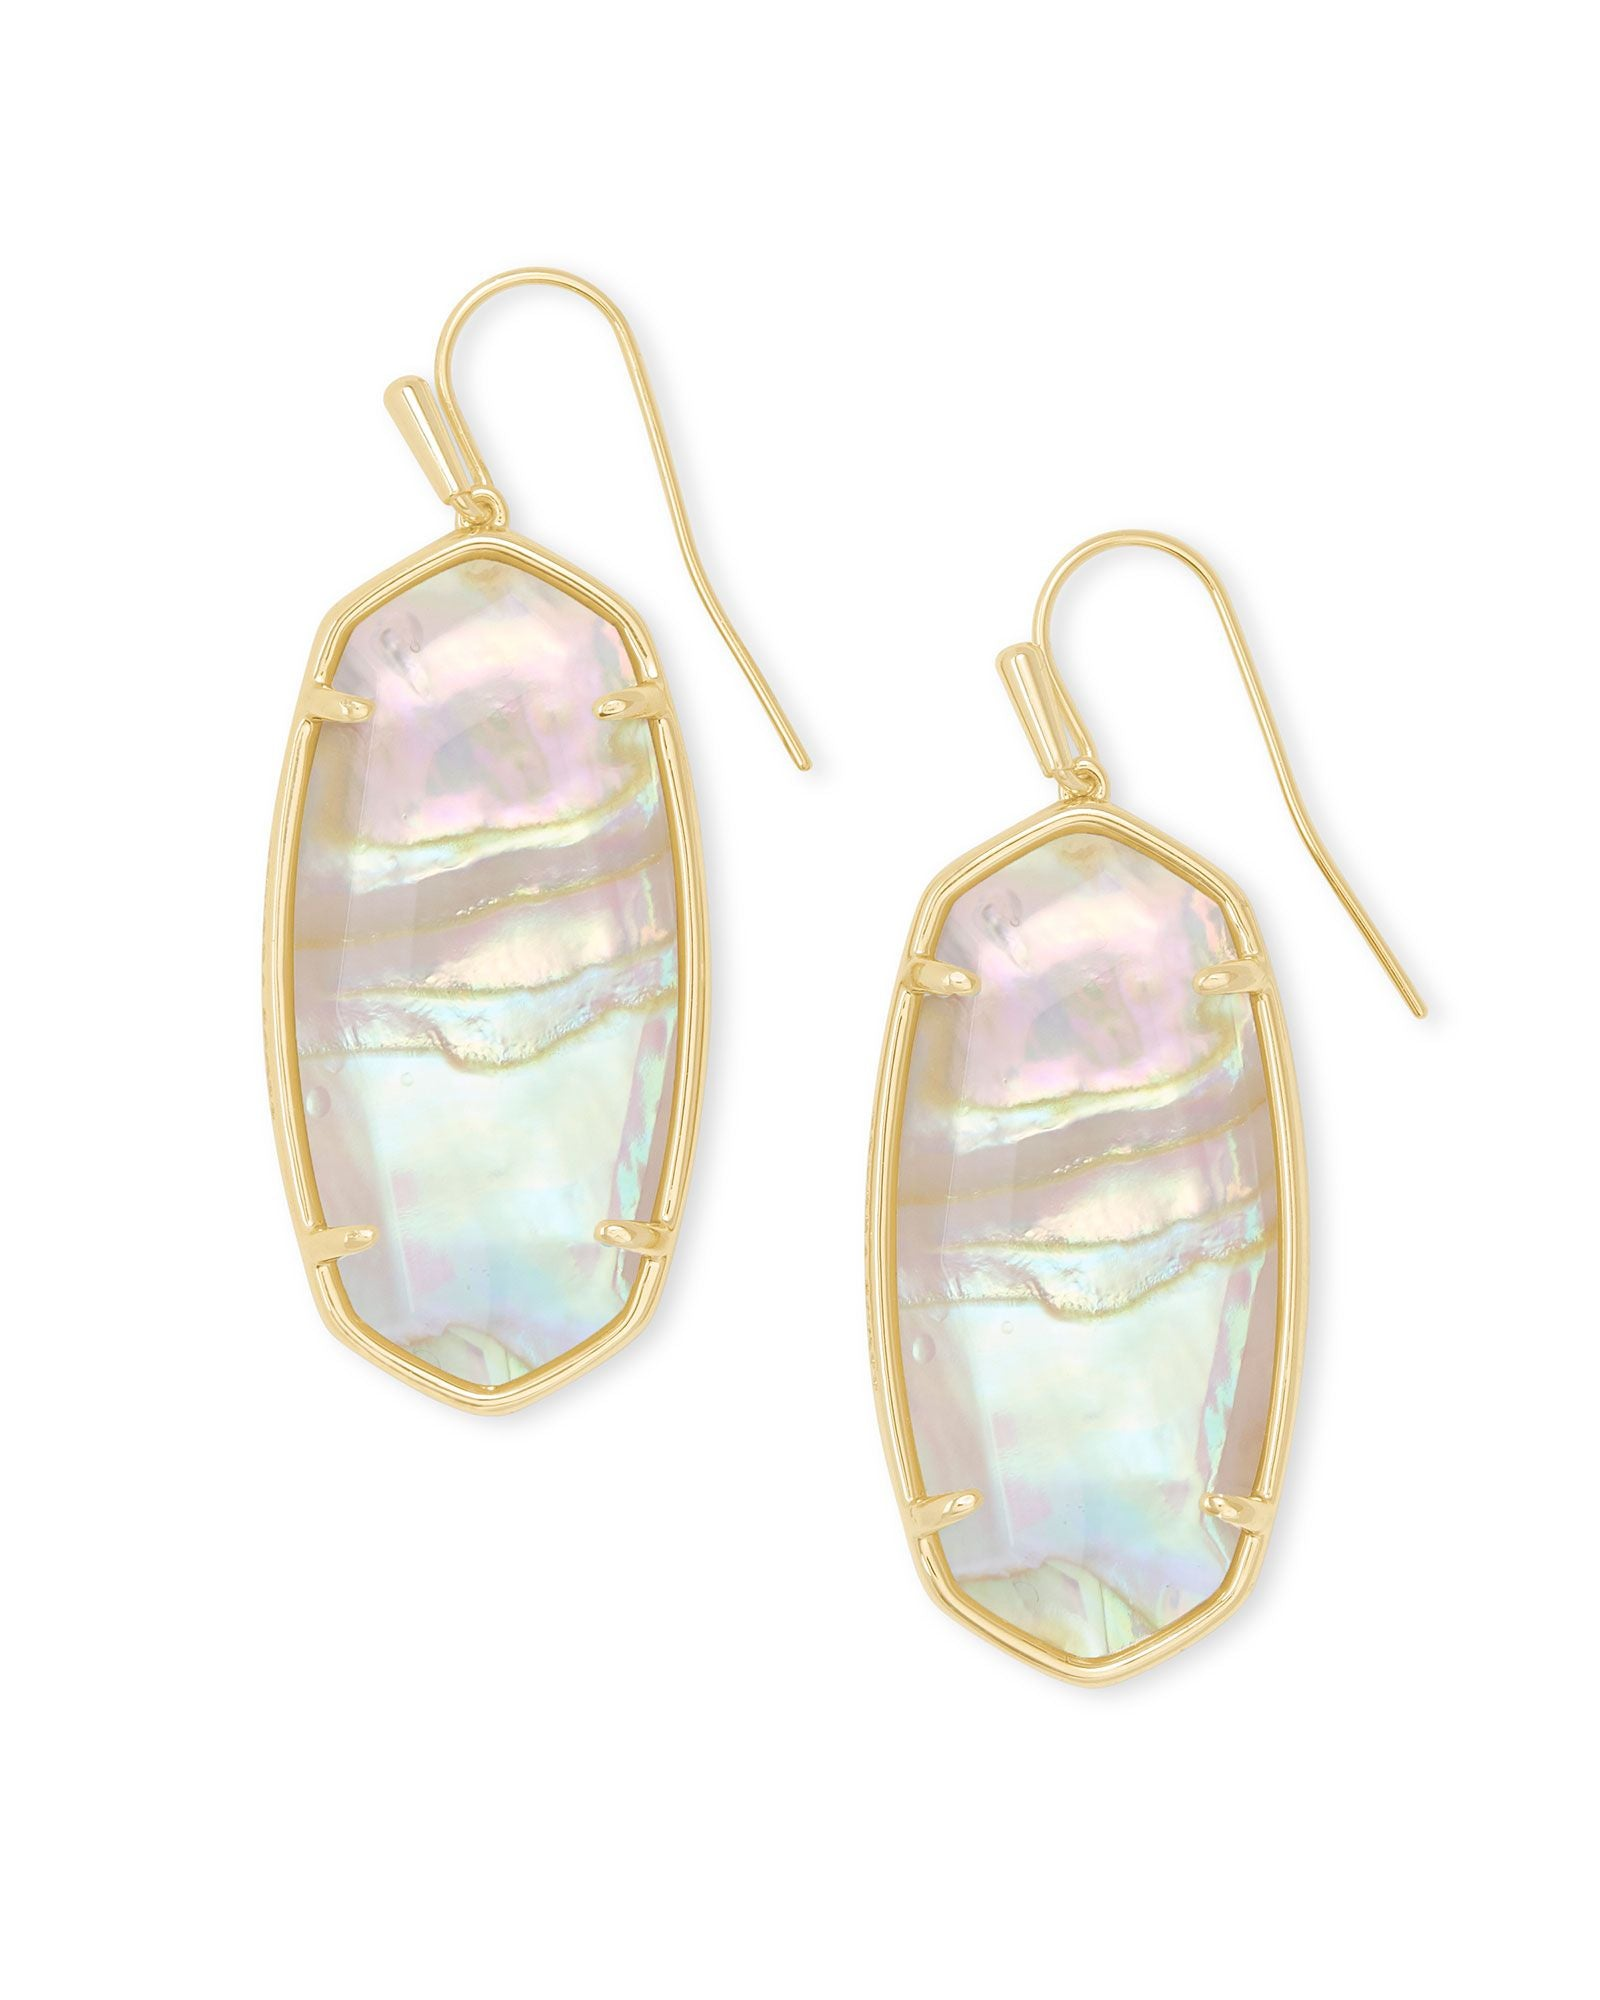 Faceted Elle Earrings - Iridescent Abalone